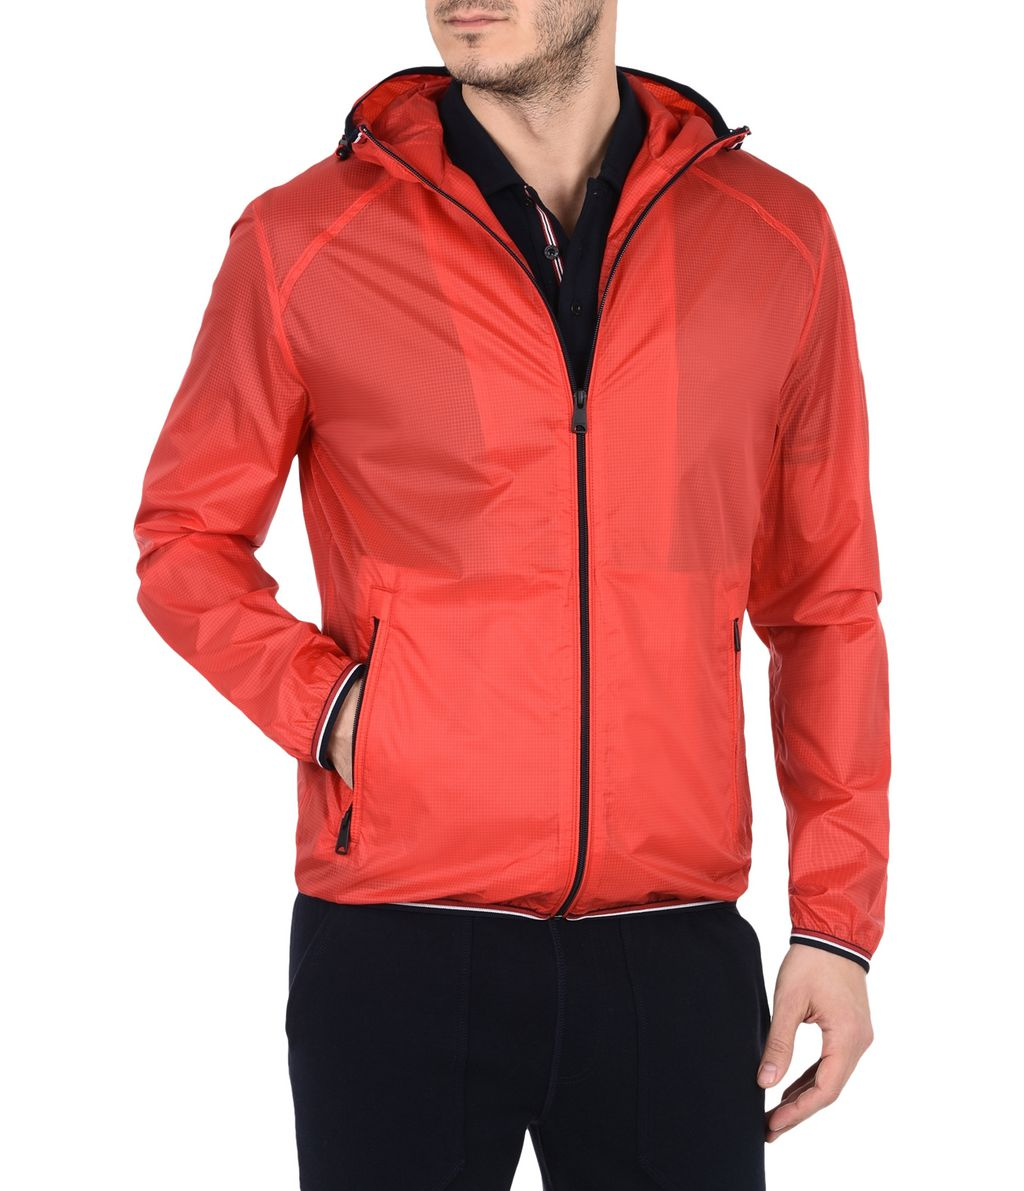 NAPAPIJRI AUGUSTA MAN SHORT JACKET,RED